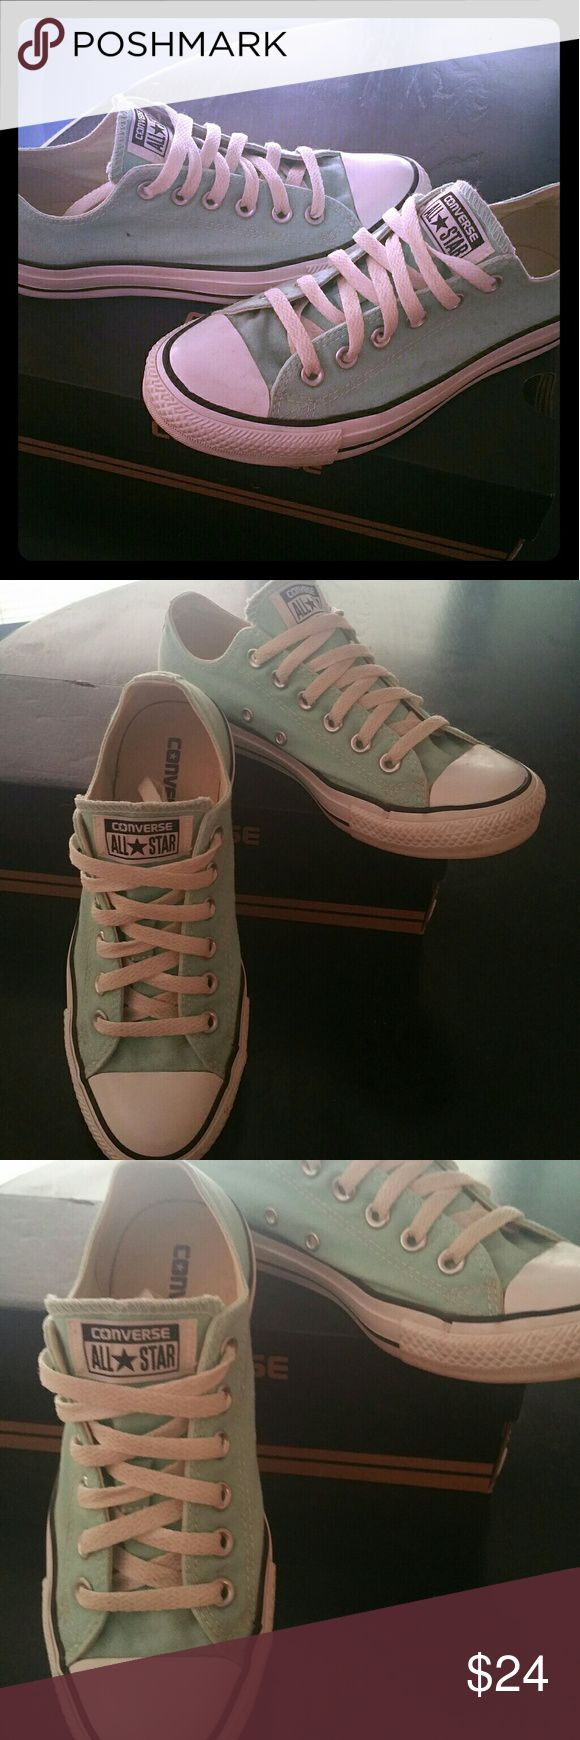 Converse sz 7 Womens  a light turquoise Converse sz 7 Womens  a light turquoise  The color code for exact color is posted in 4th pic Only worn 2x. The shoestring 's got a little dirty but everything else in great condition. Converse Shoes Sneakers